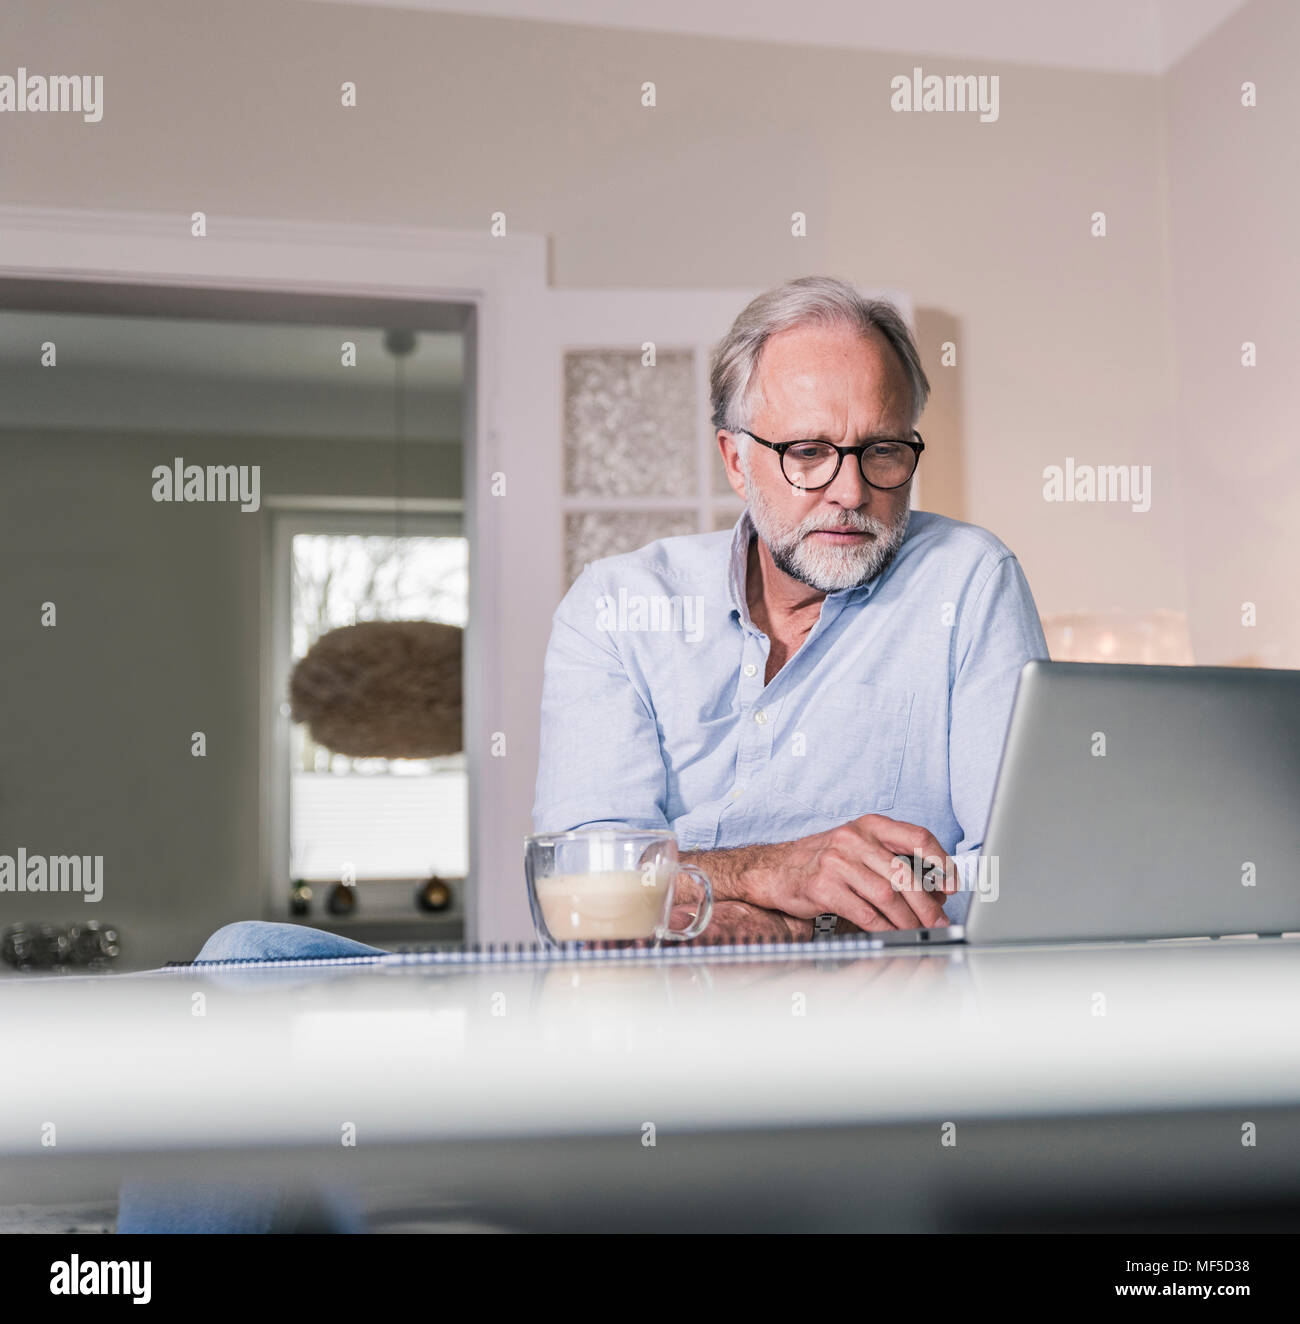 Portrait of businessman working at home office - Stock Image